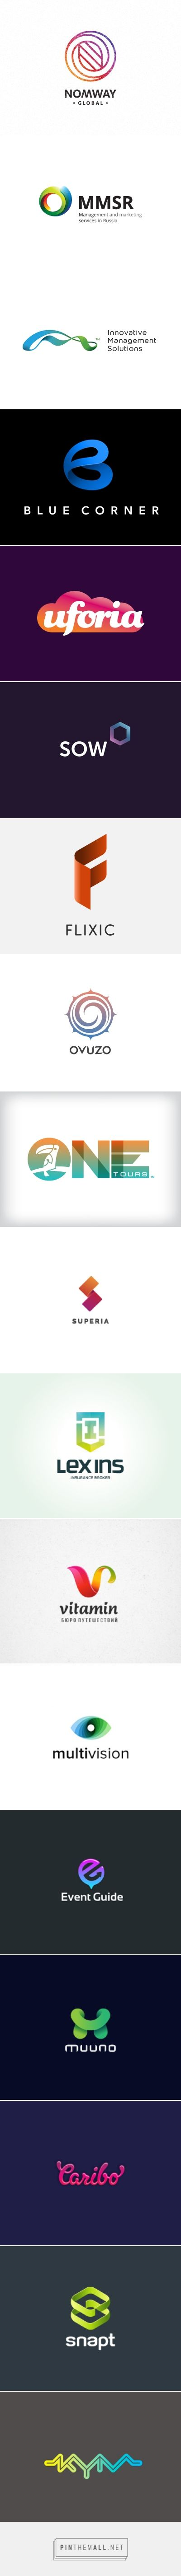 Logo Design: Gradients | Abduzeedo Design Inspiration - created via http://pinthemall.net